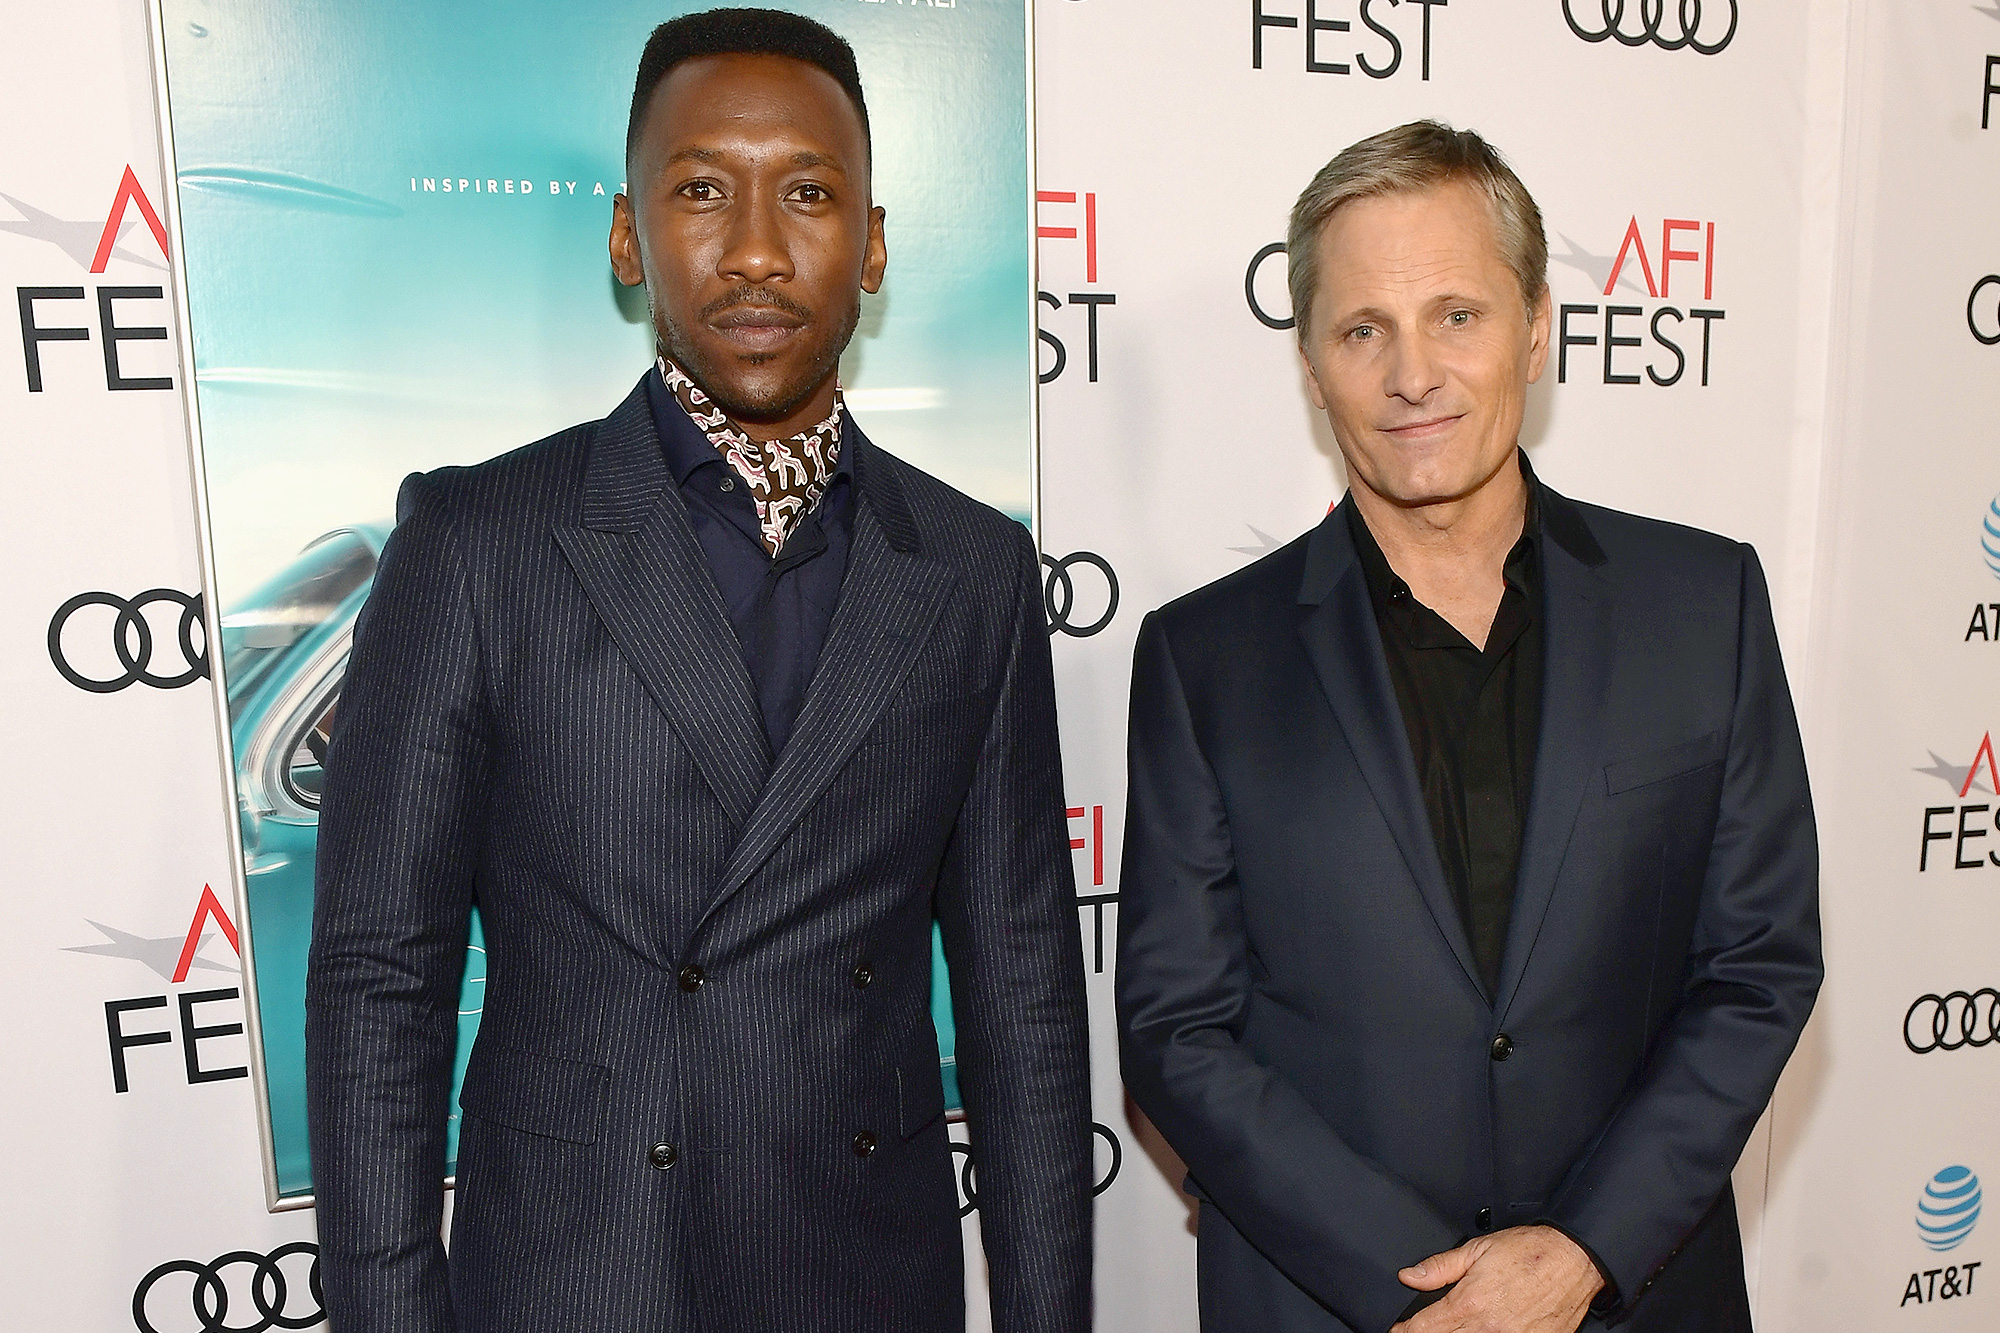 Mahershala Ali, Viggo Mortensen, Extraordinary Teammate, AFI Fest Gala - Mahershala Ali and Viggo Mortensen attend the Gala Screening of 'Green Book' at AFI FEST 2018 Presented By Audi at TCL Chinese Theatre on November 9, 2018 in Hollywood, California.